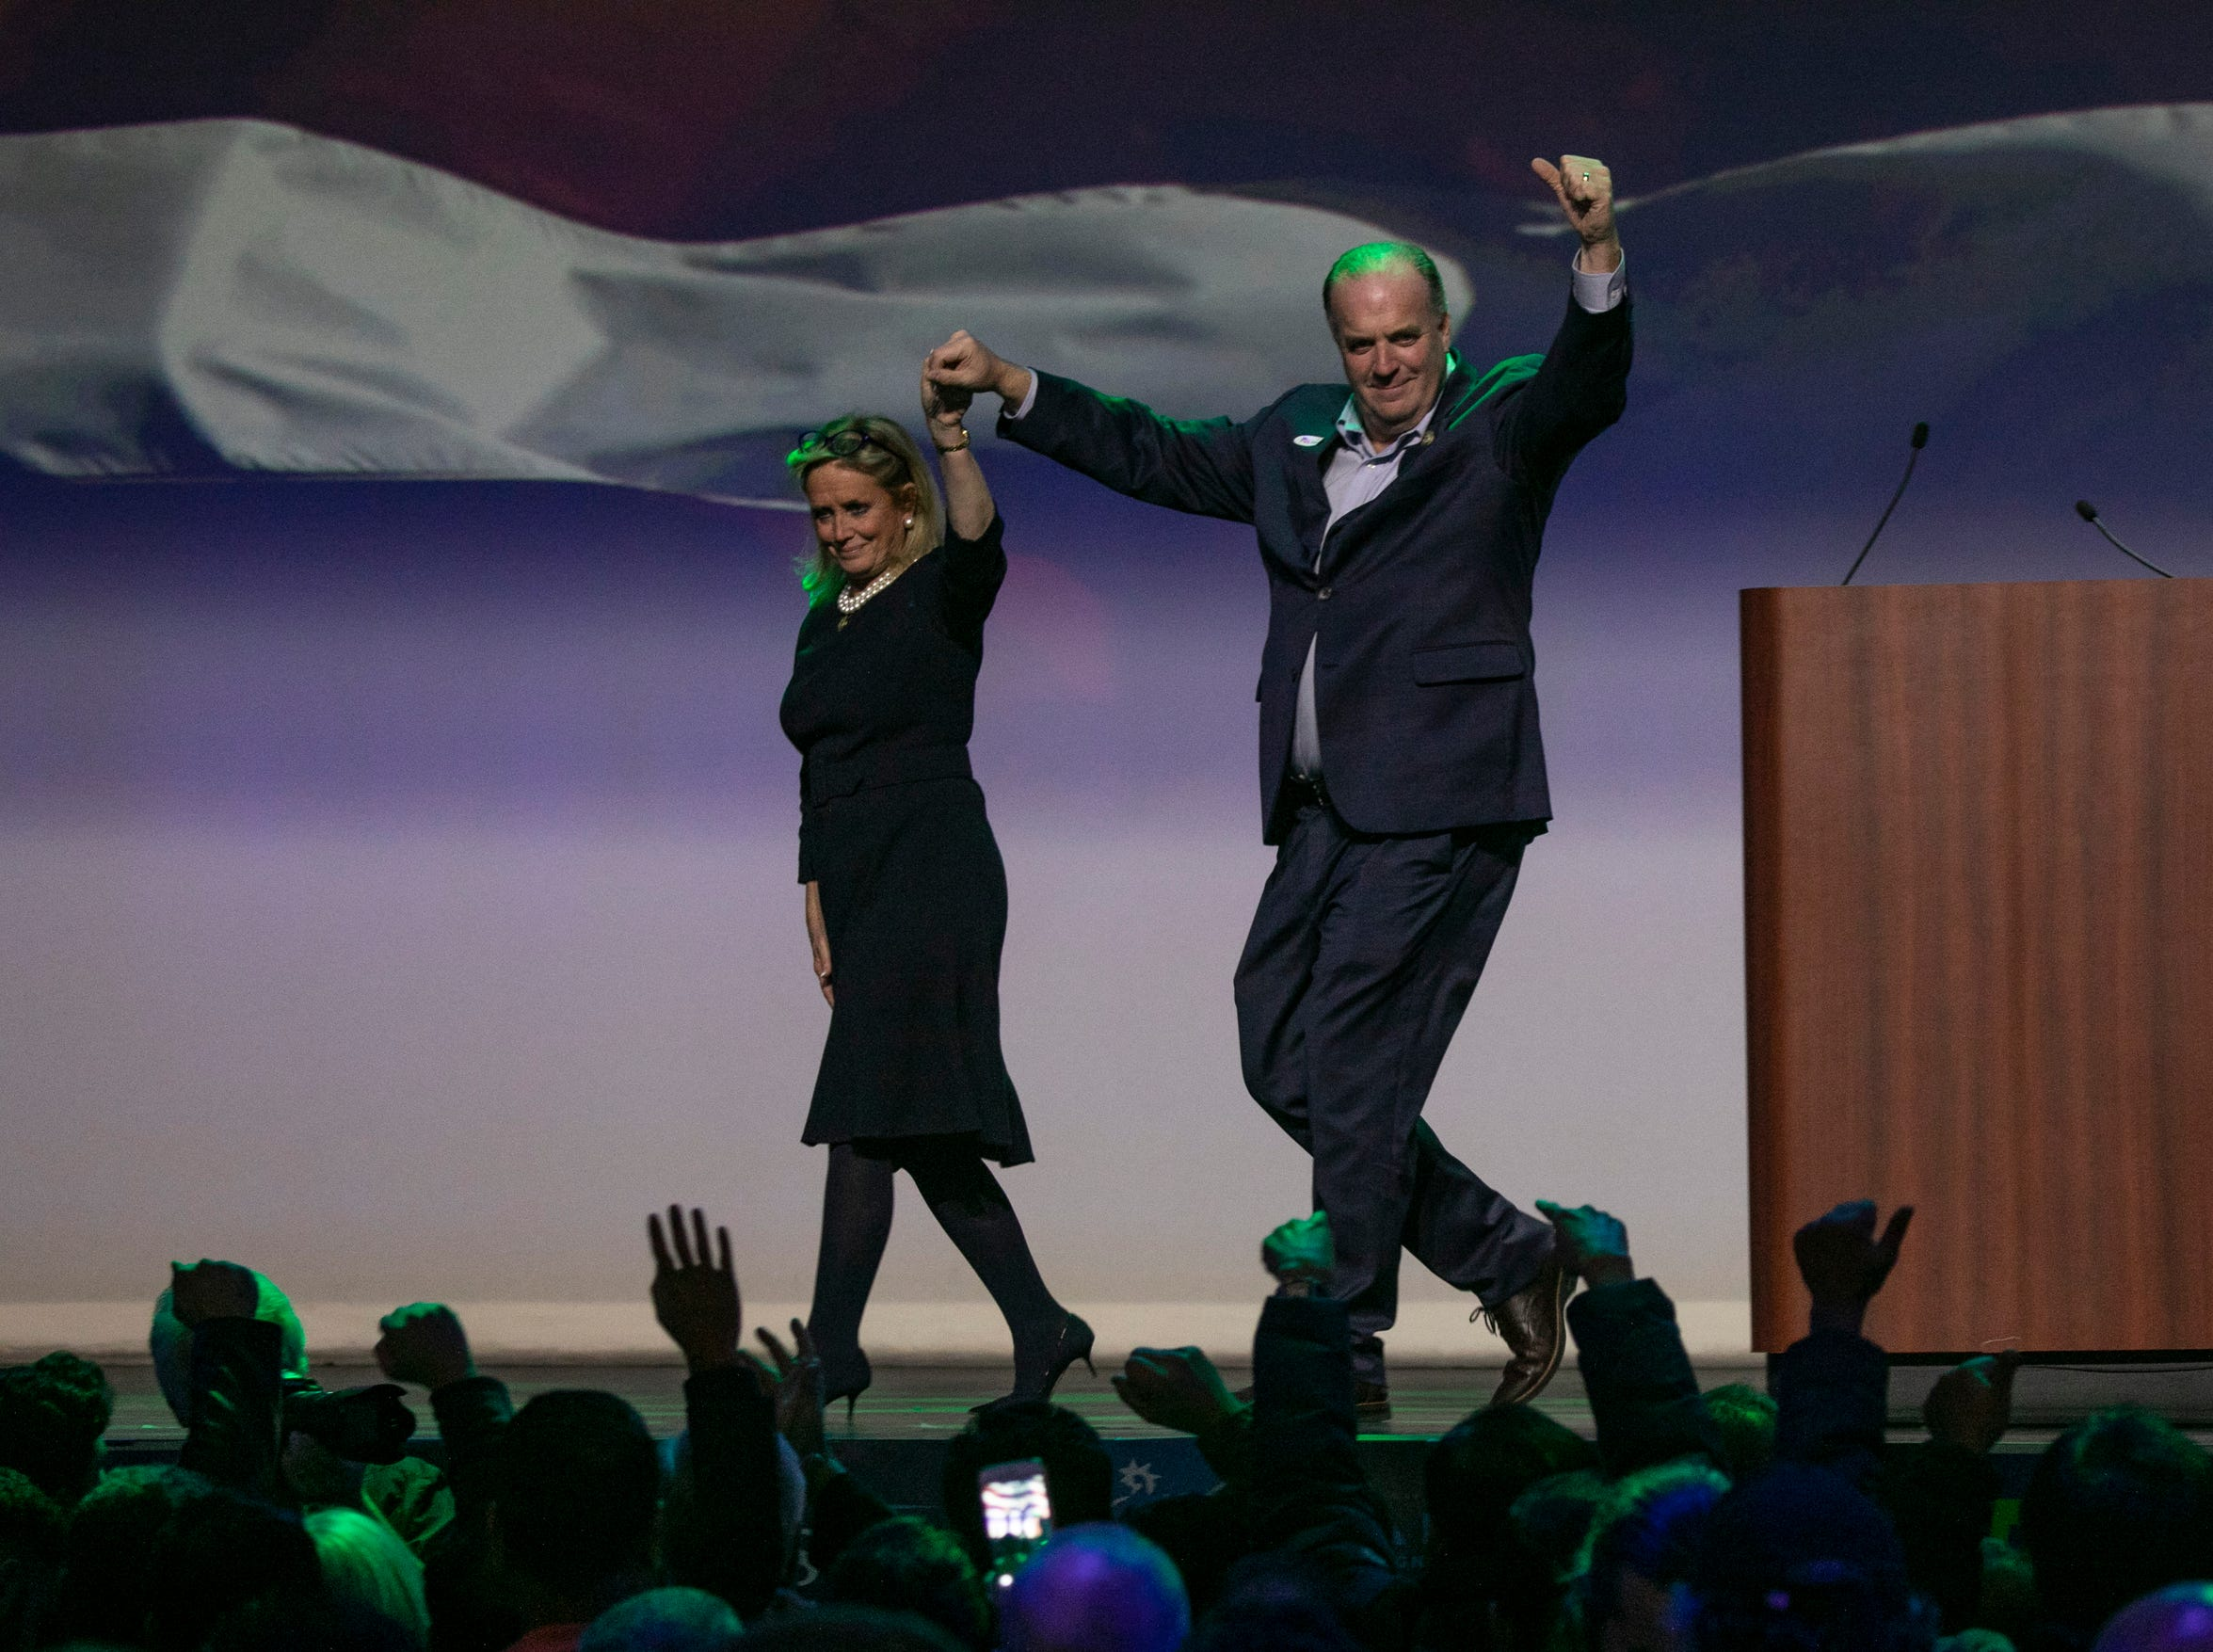 Congresswoman Debbie Dingell and Dan Kildee address the crowd during the watch party held at the Sound Board in the MotorCity Casino in Detroit Tuesday, Nov. 6, 2018.